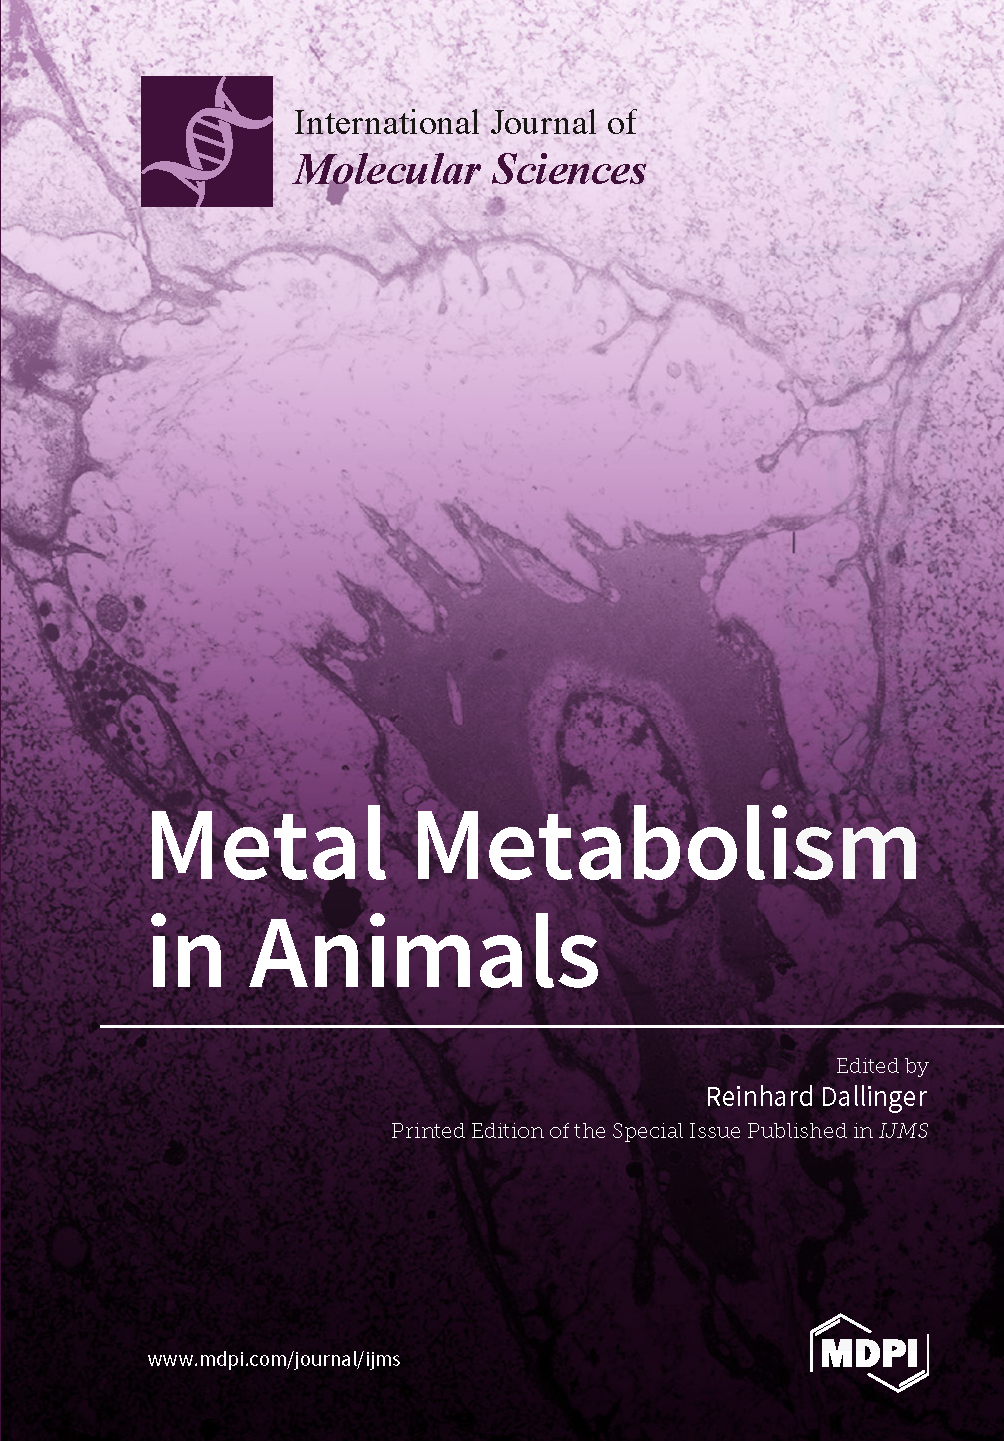 Metal Metabolism in Animals